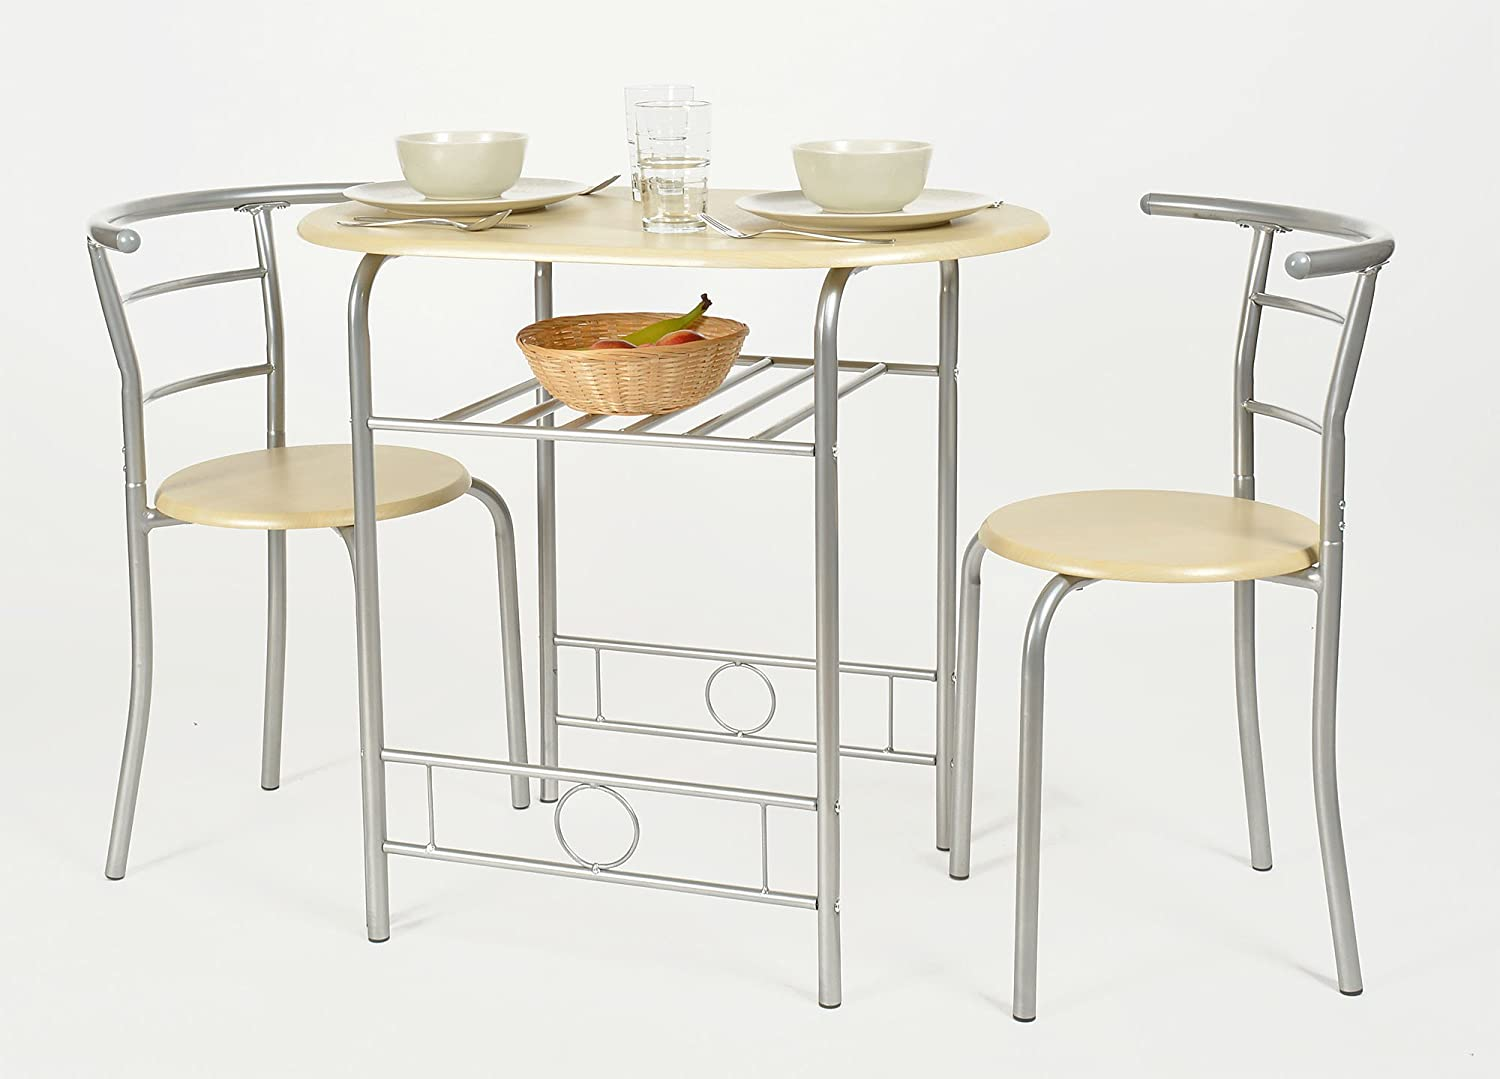 ts-ideen Set 3 Pieces kitchen Table plus 2 Chairs Aluminium and MDF ...